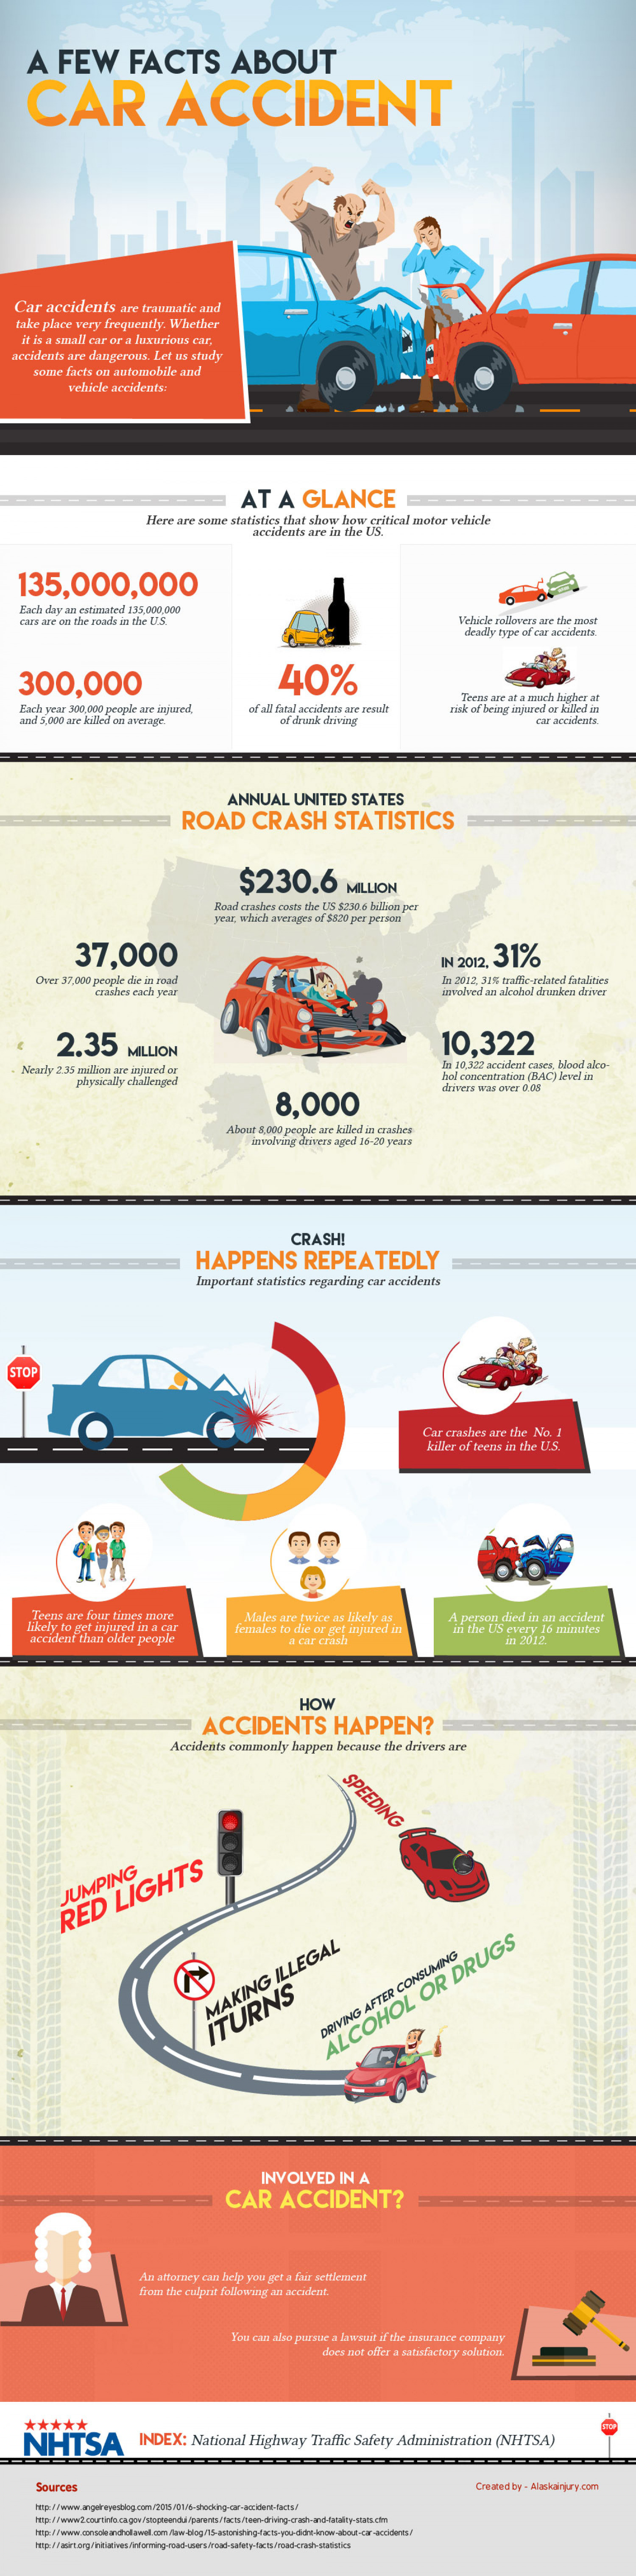 A Few Facts about Car Accident Infographic